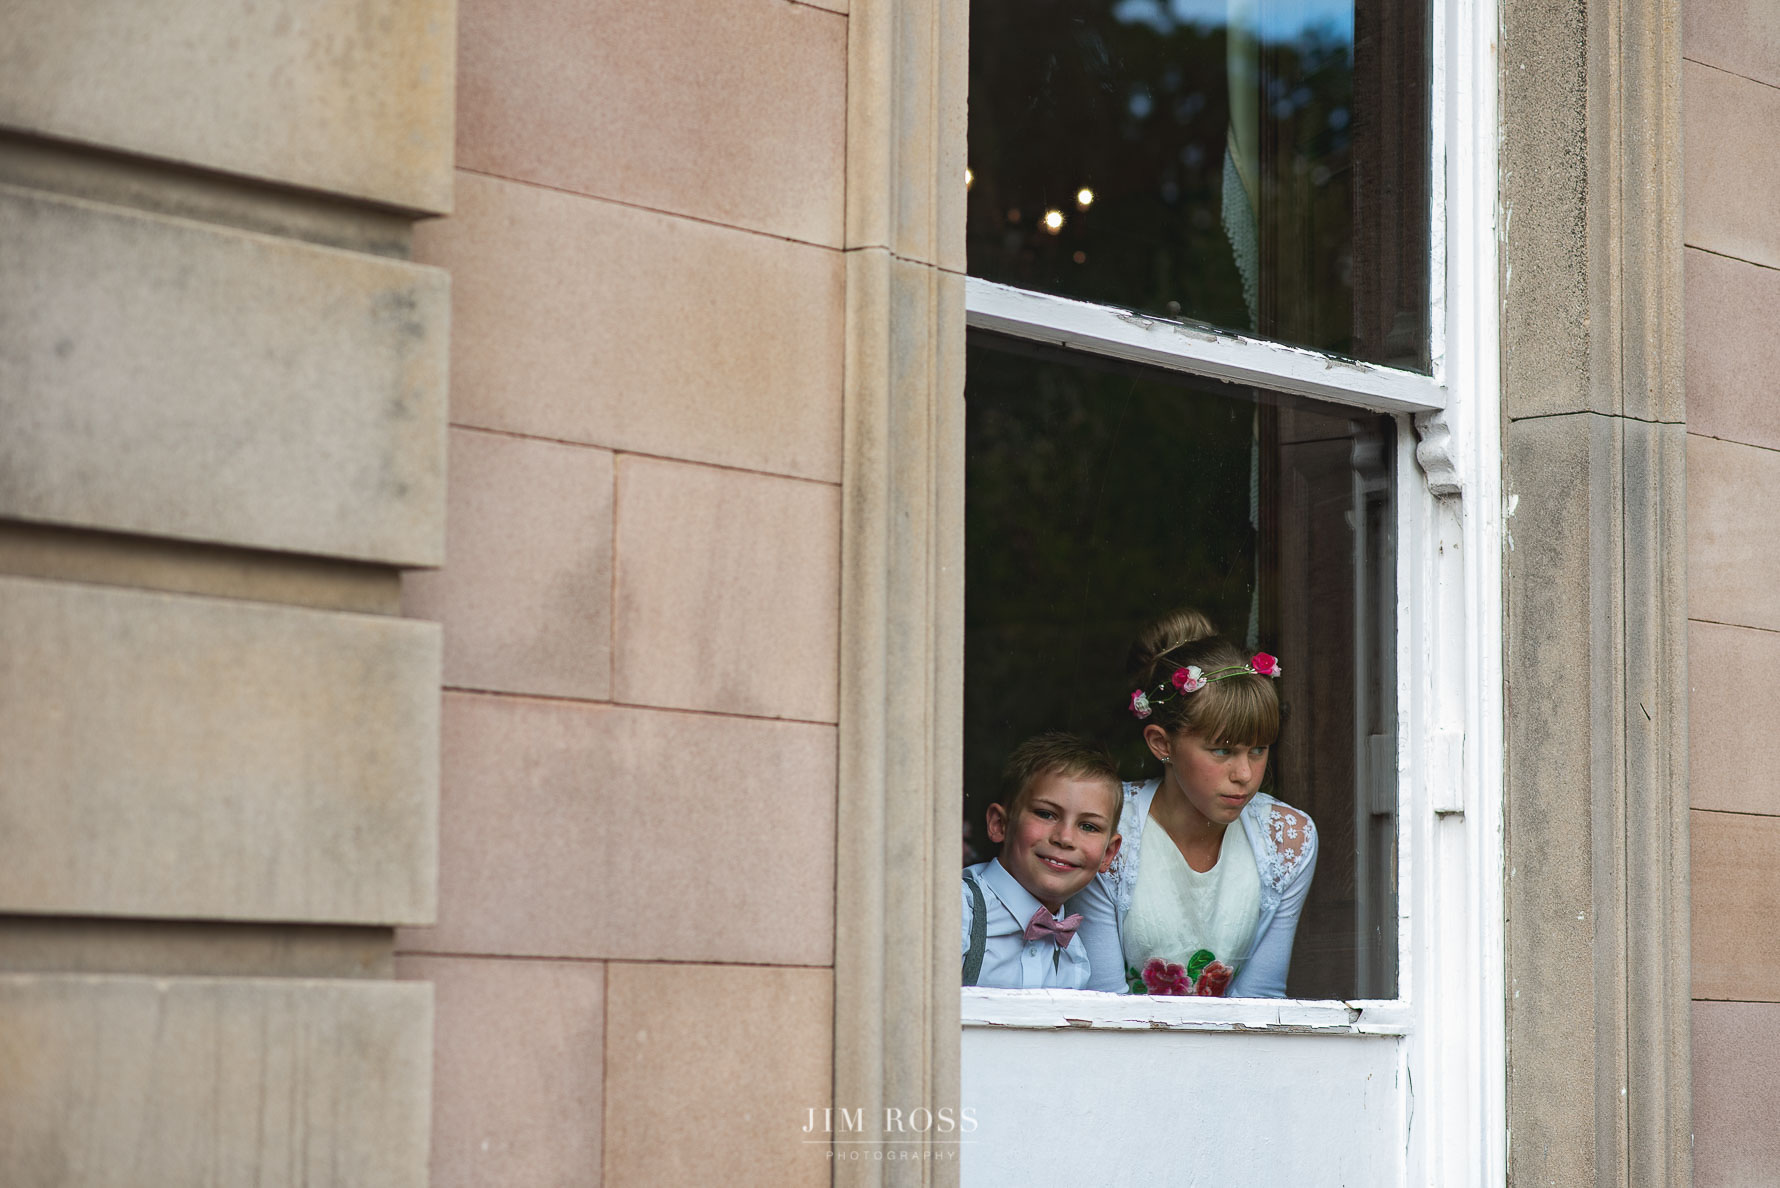 Children peek at wedding guests through window